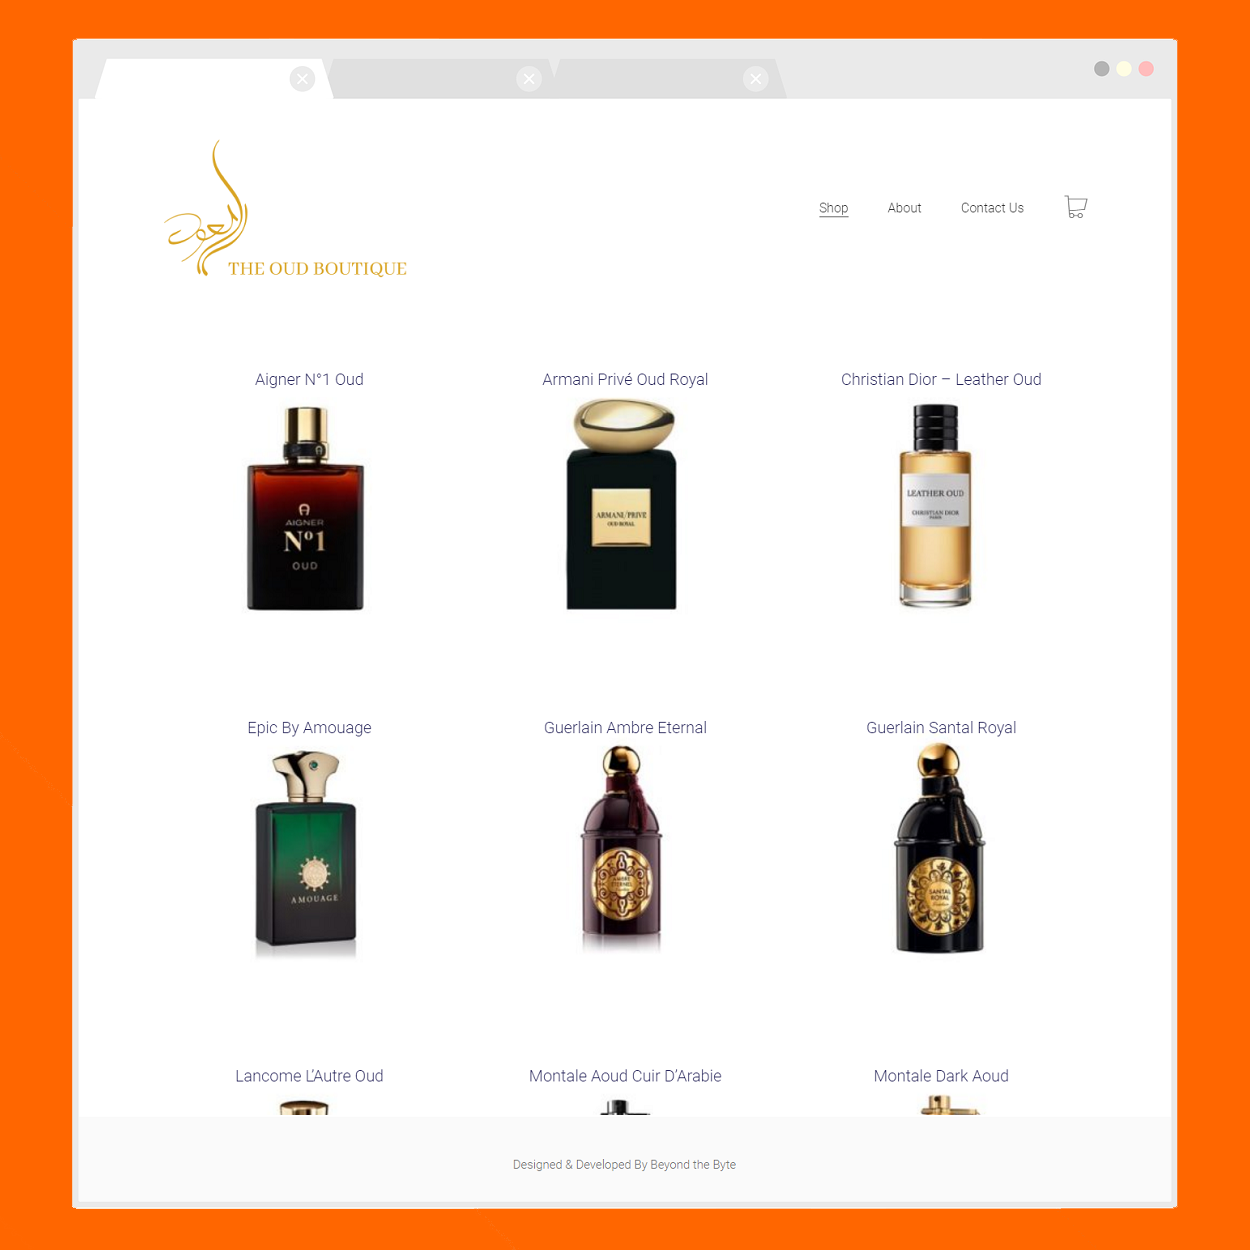 The Oud Boutique (Home Page)